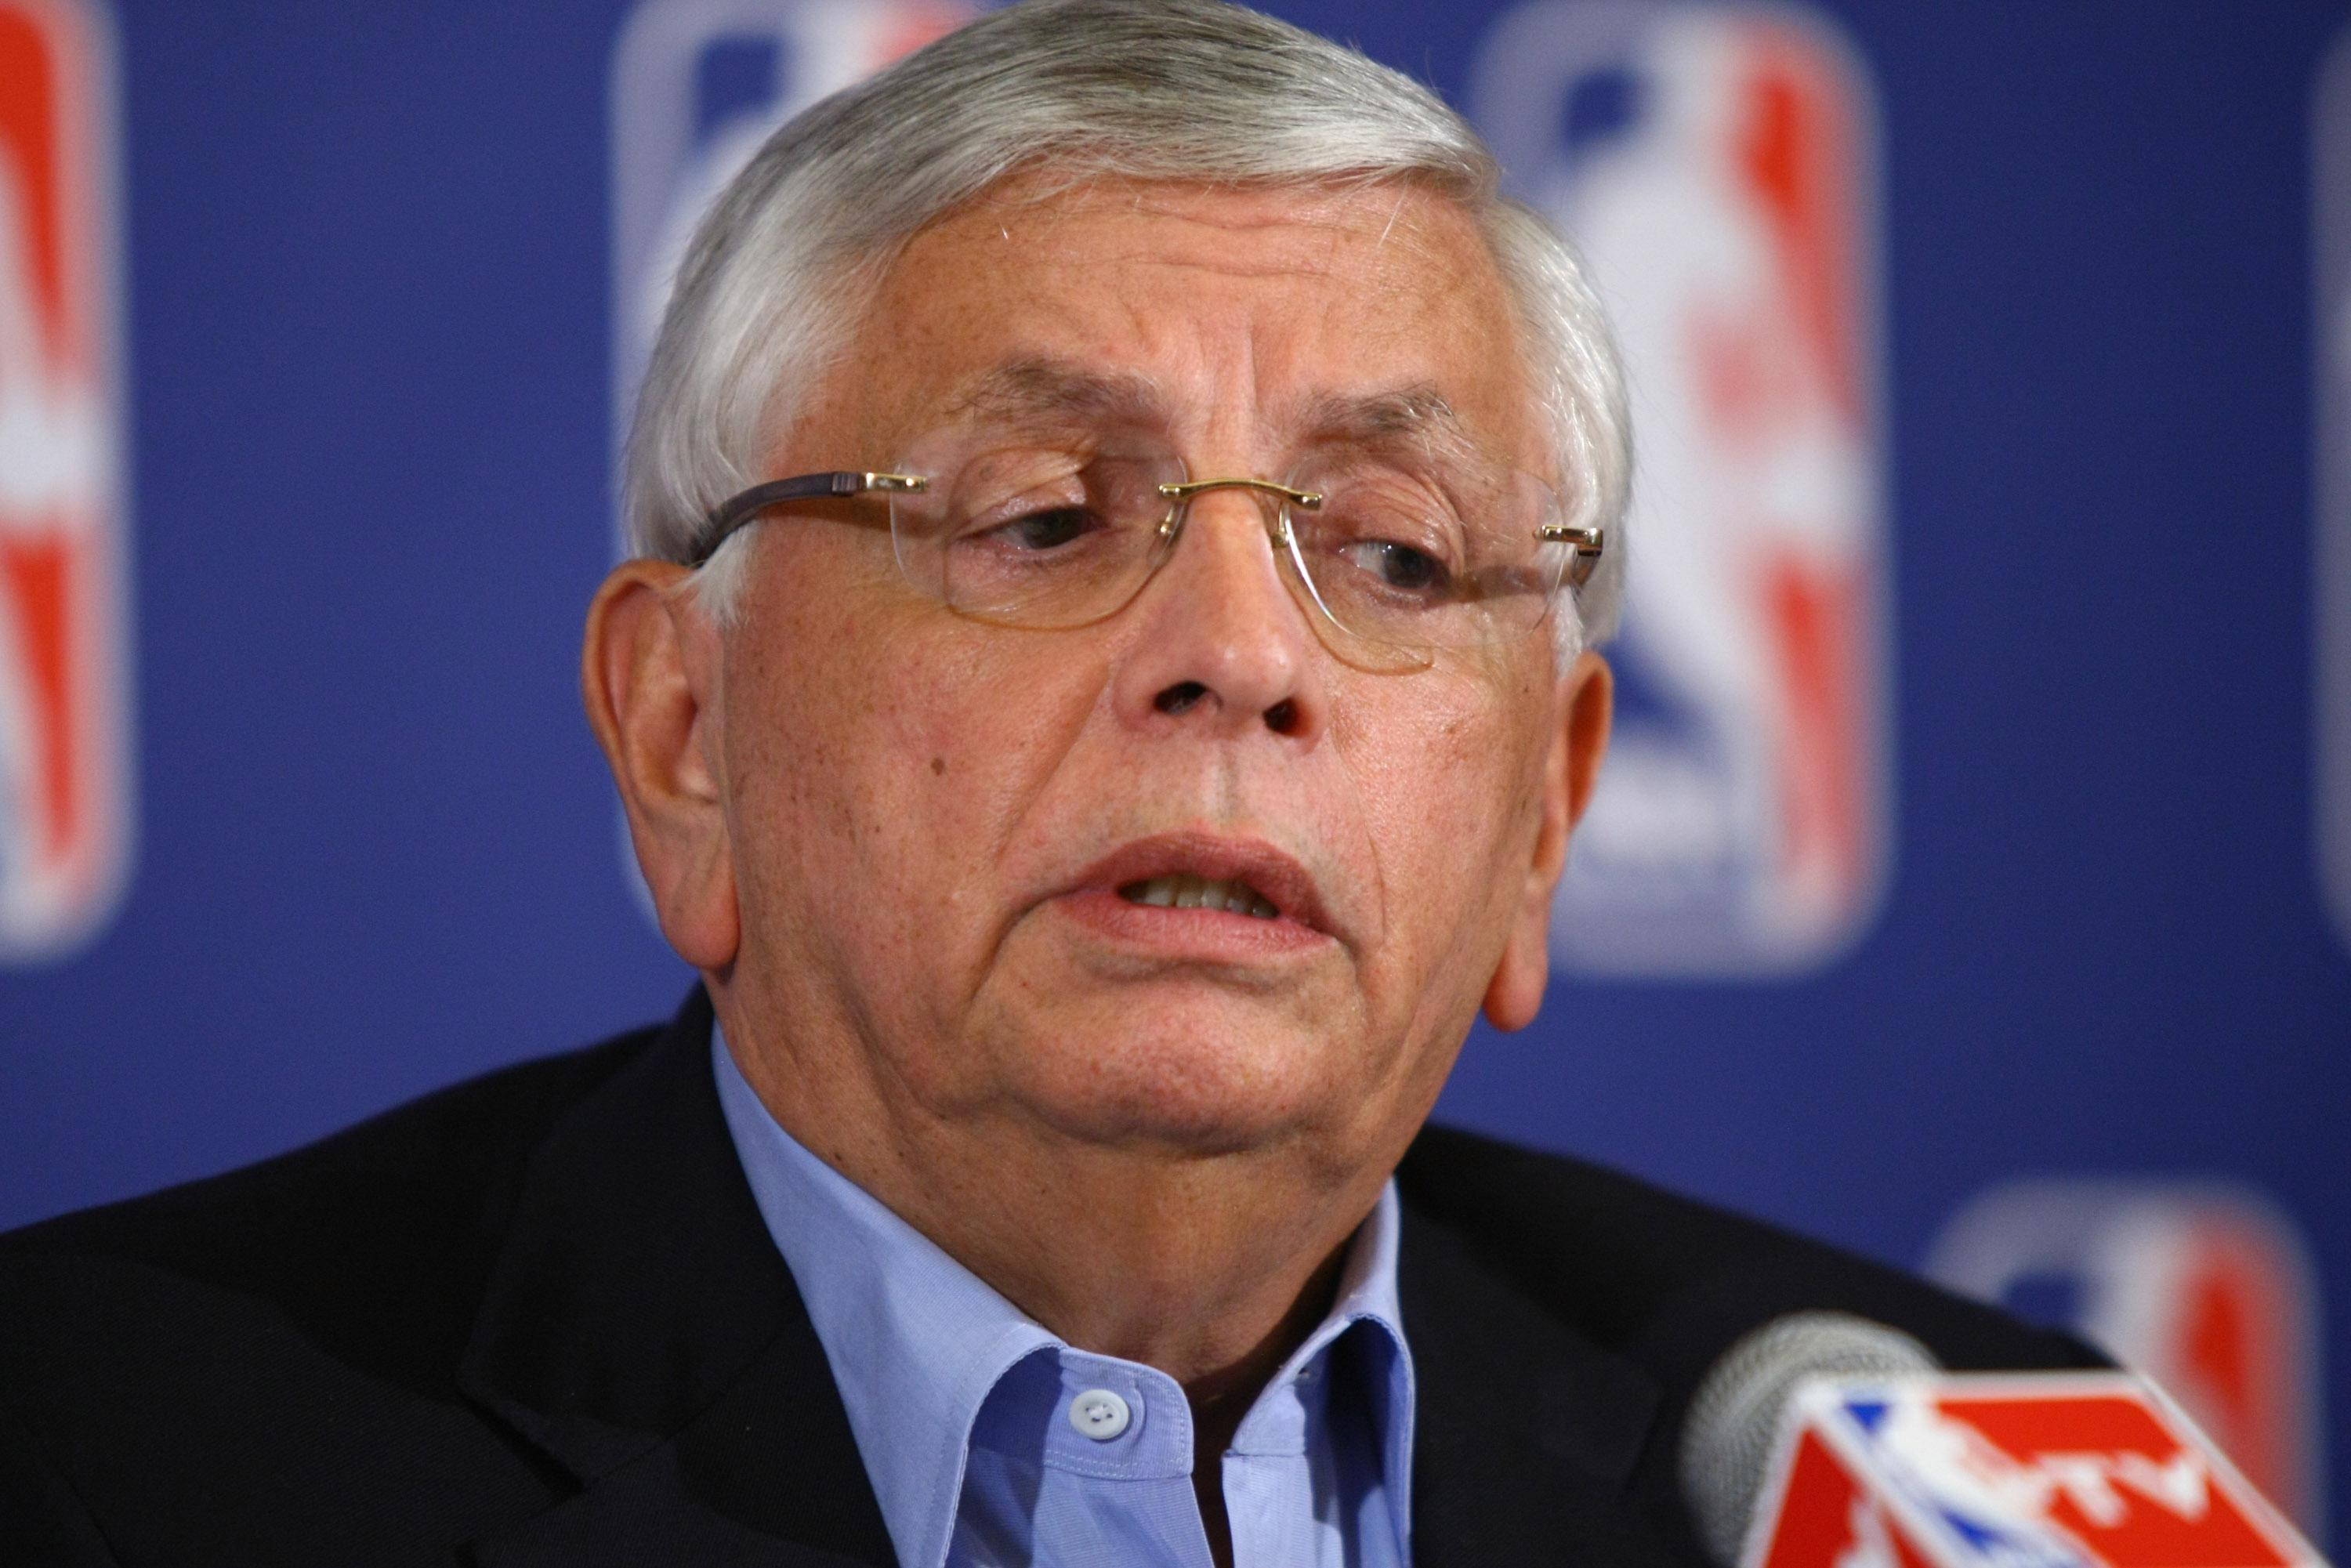 NBA players, referees to wear black bands as Stern tribute